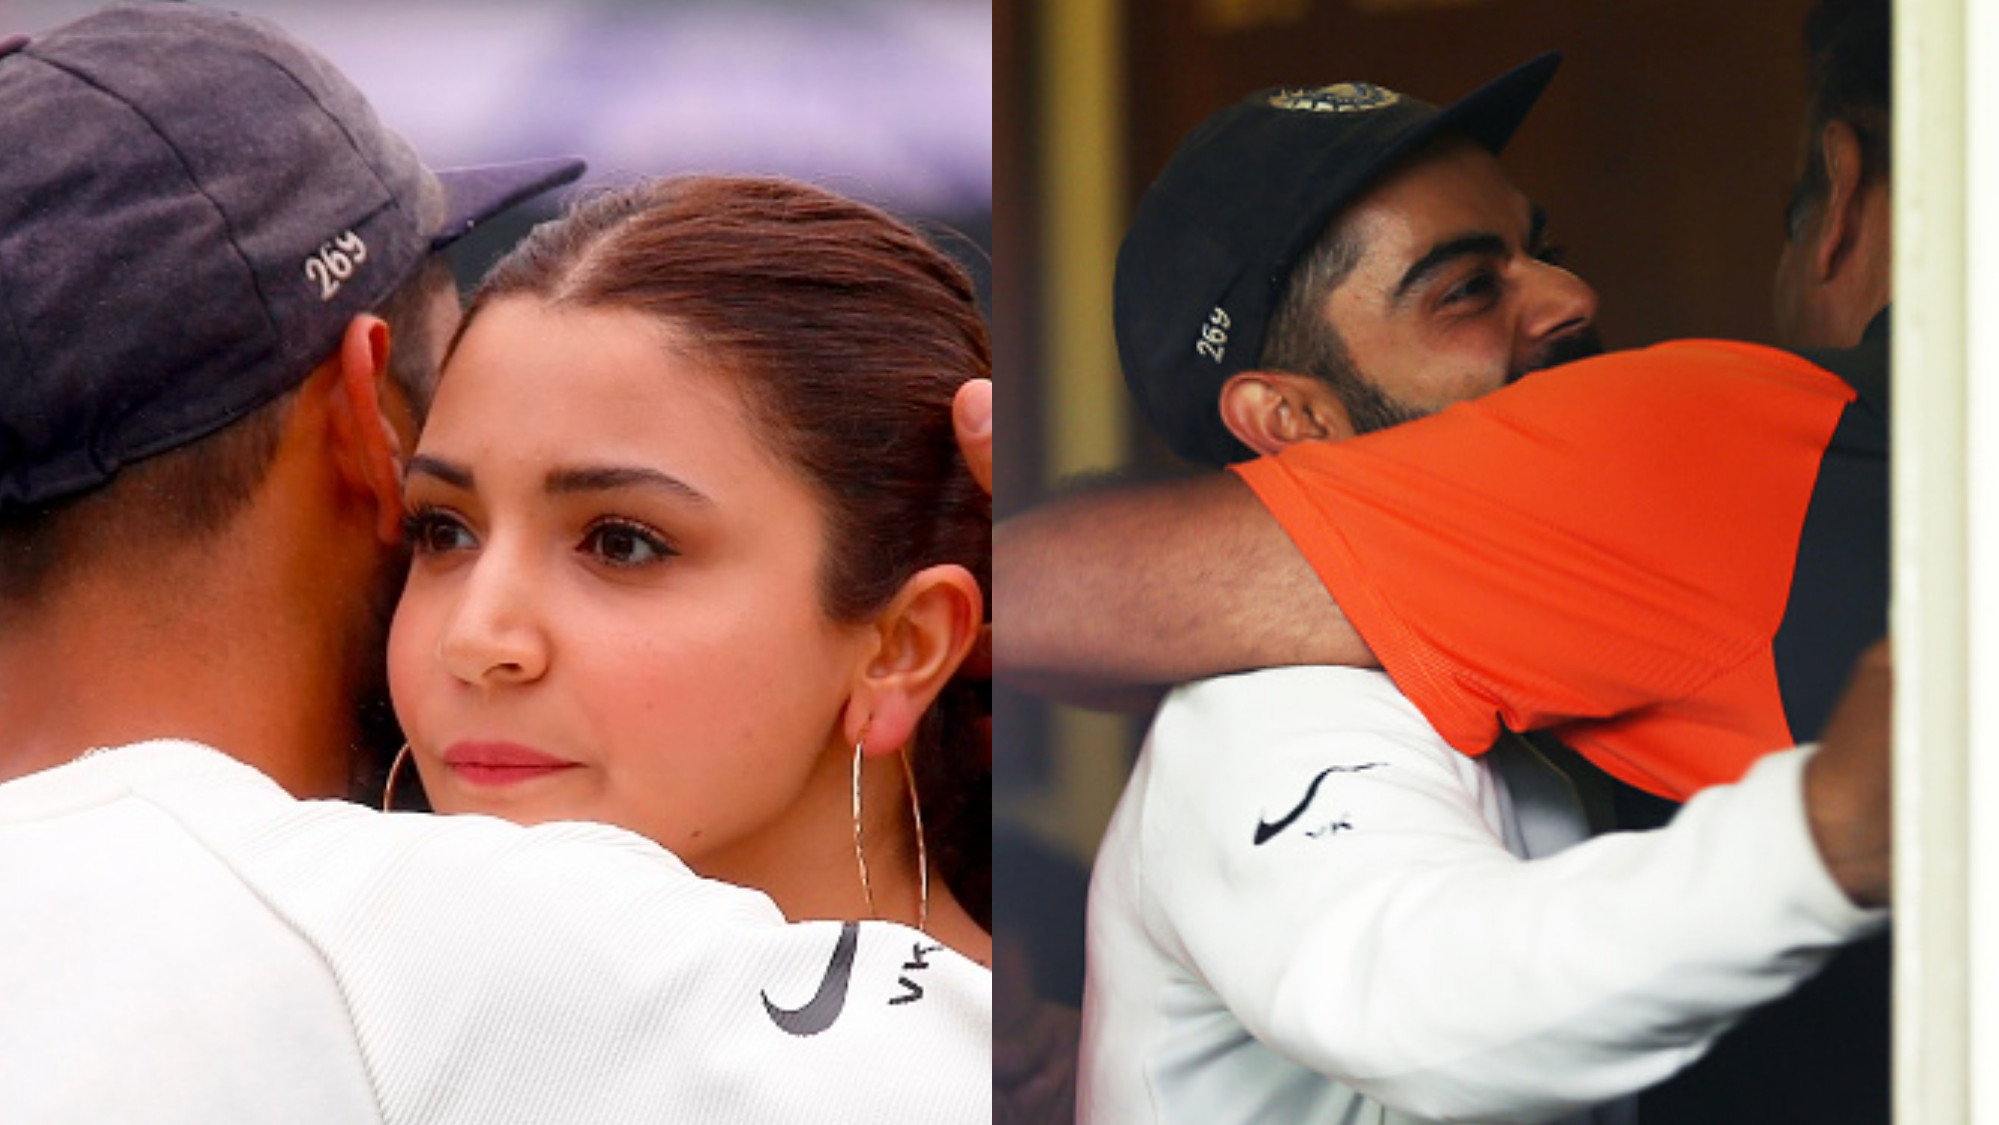 AUS v IND 2018-19: WATCH – Virat Kohli and Indian team's emotional celebration; Virat and Anushka share a hug